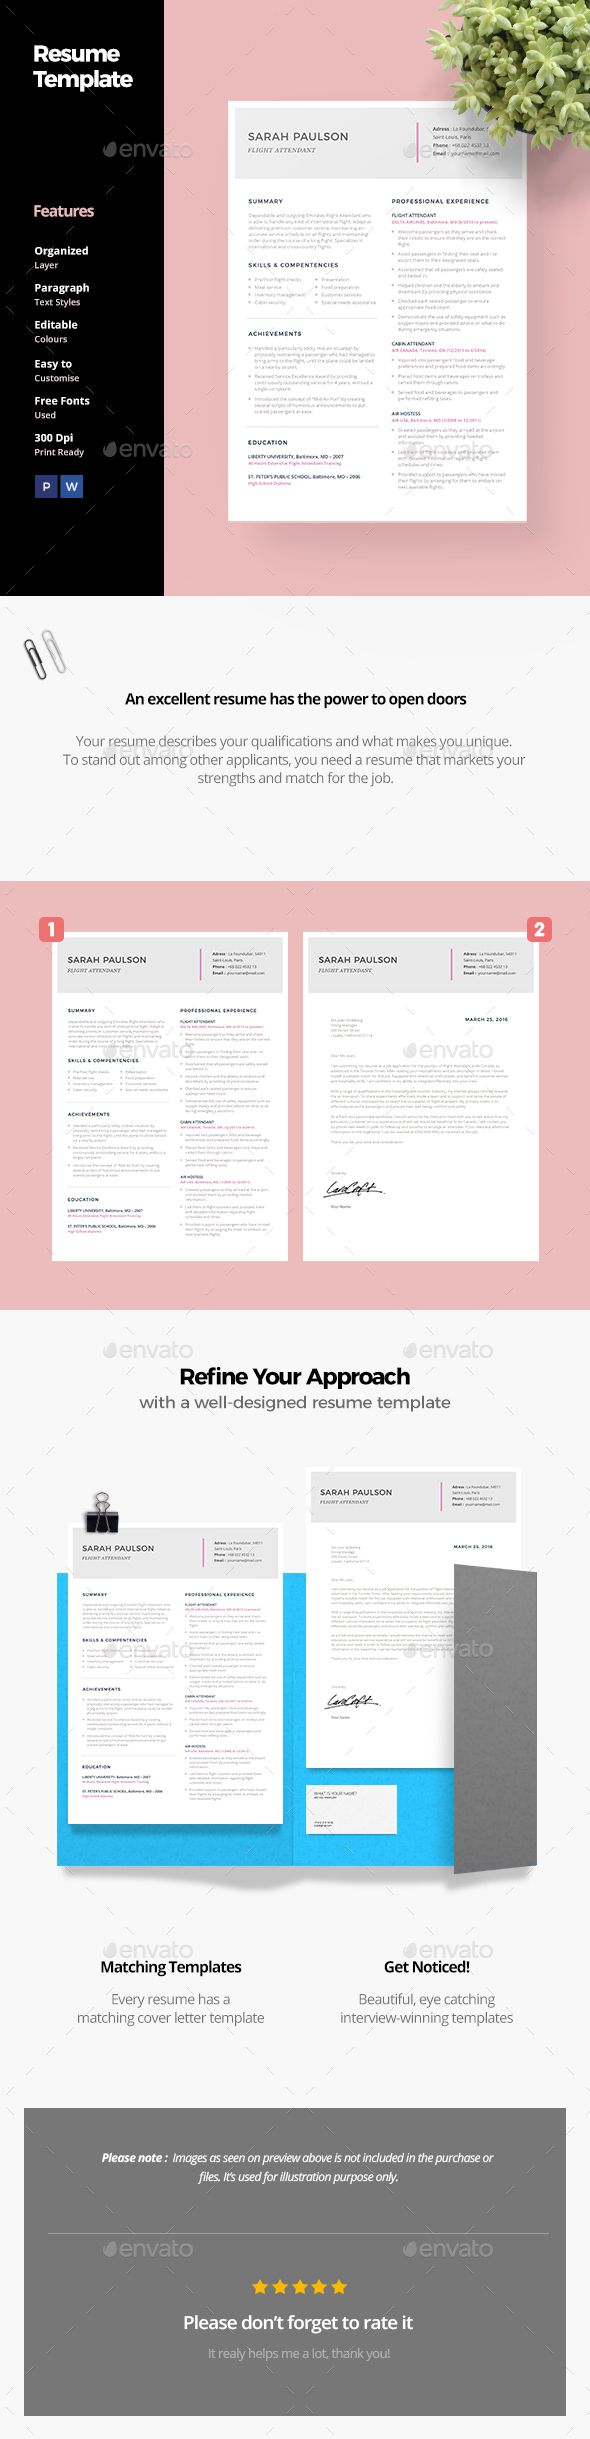 How Do You Make A Cover Letter For A Resume Pdf The  Best Images About Resume Templates On Pinterest  Sample Resumes For High School Students with Medical Assistant Resume Samples Pdf Resume Template Personal Trainer Resume Sample Excel